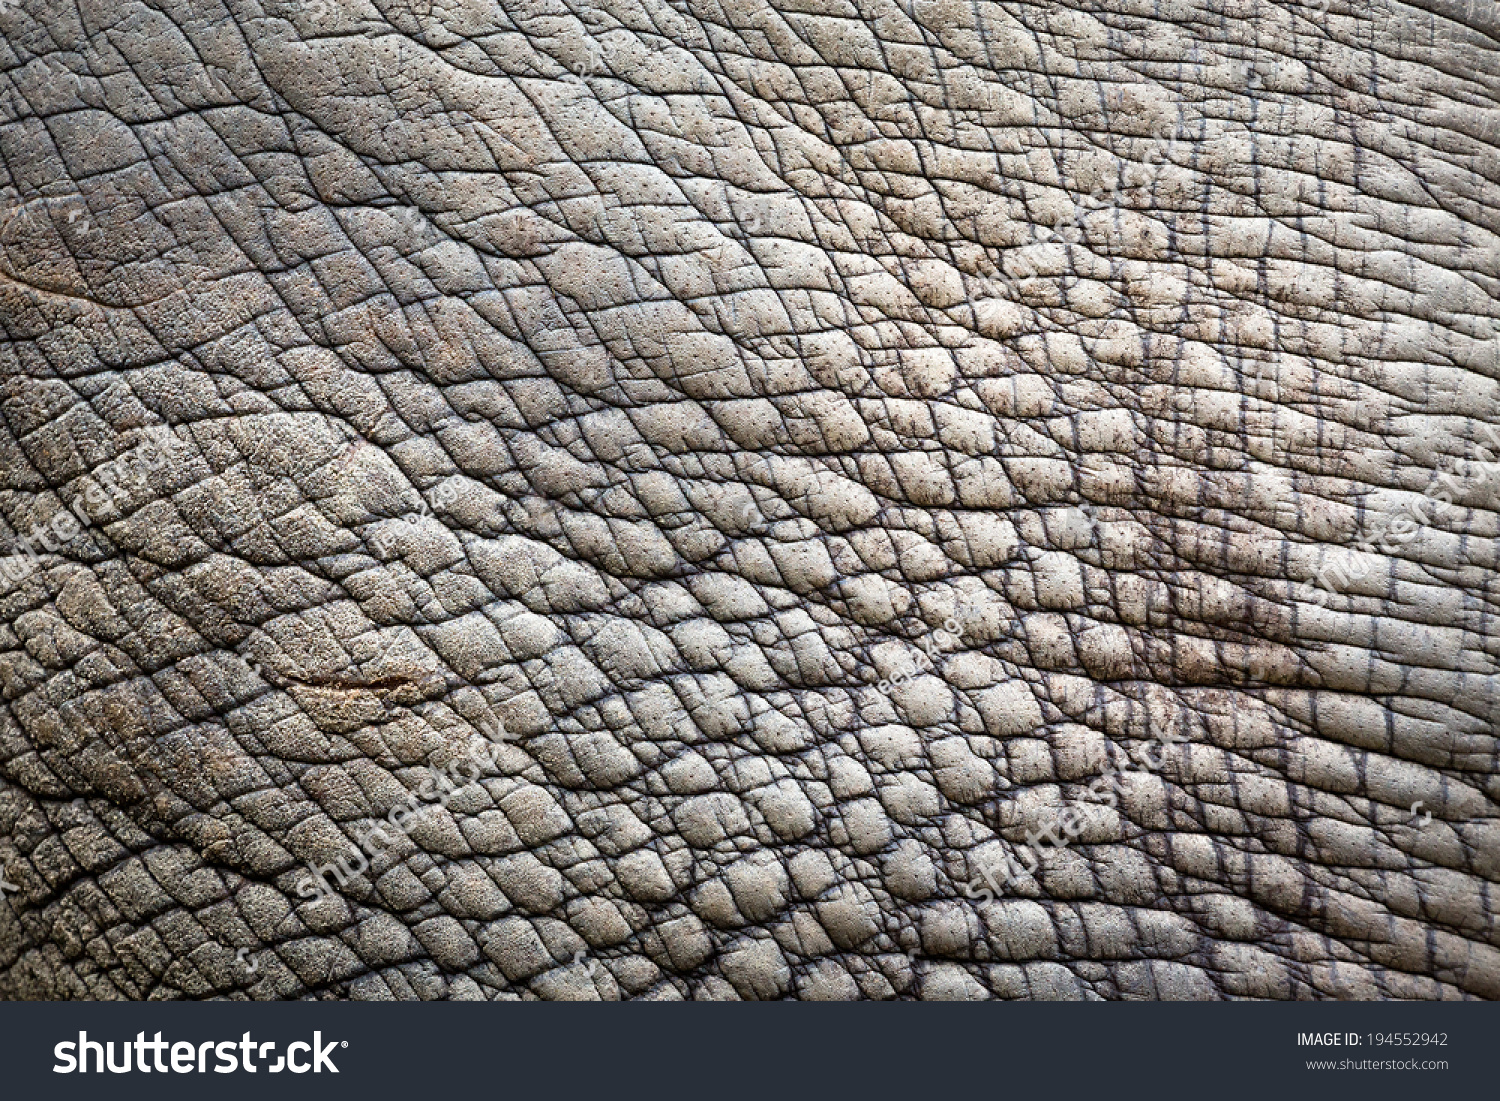 Rhino (White Rhinoceros) Skin Texture. Stock Photo ...